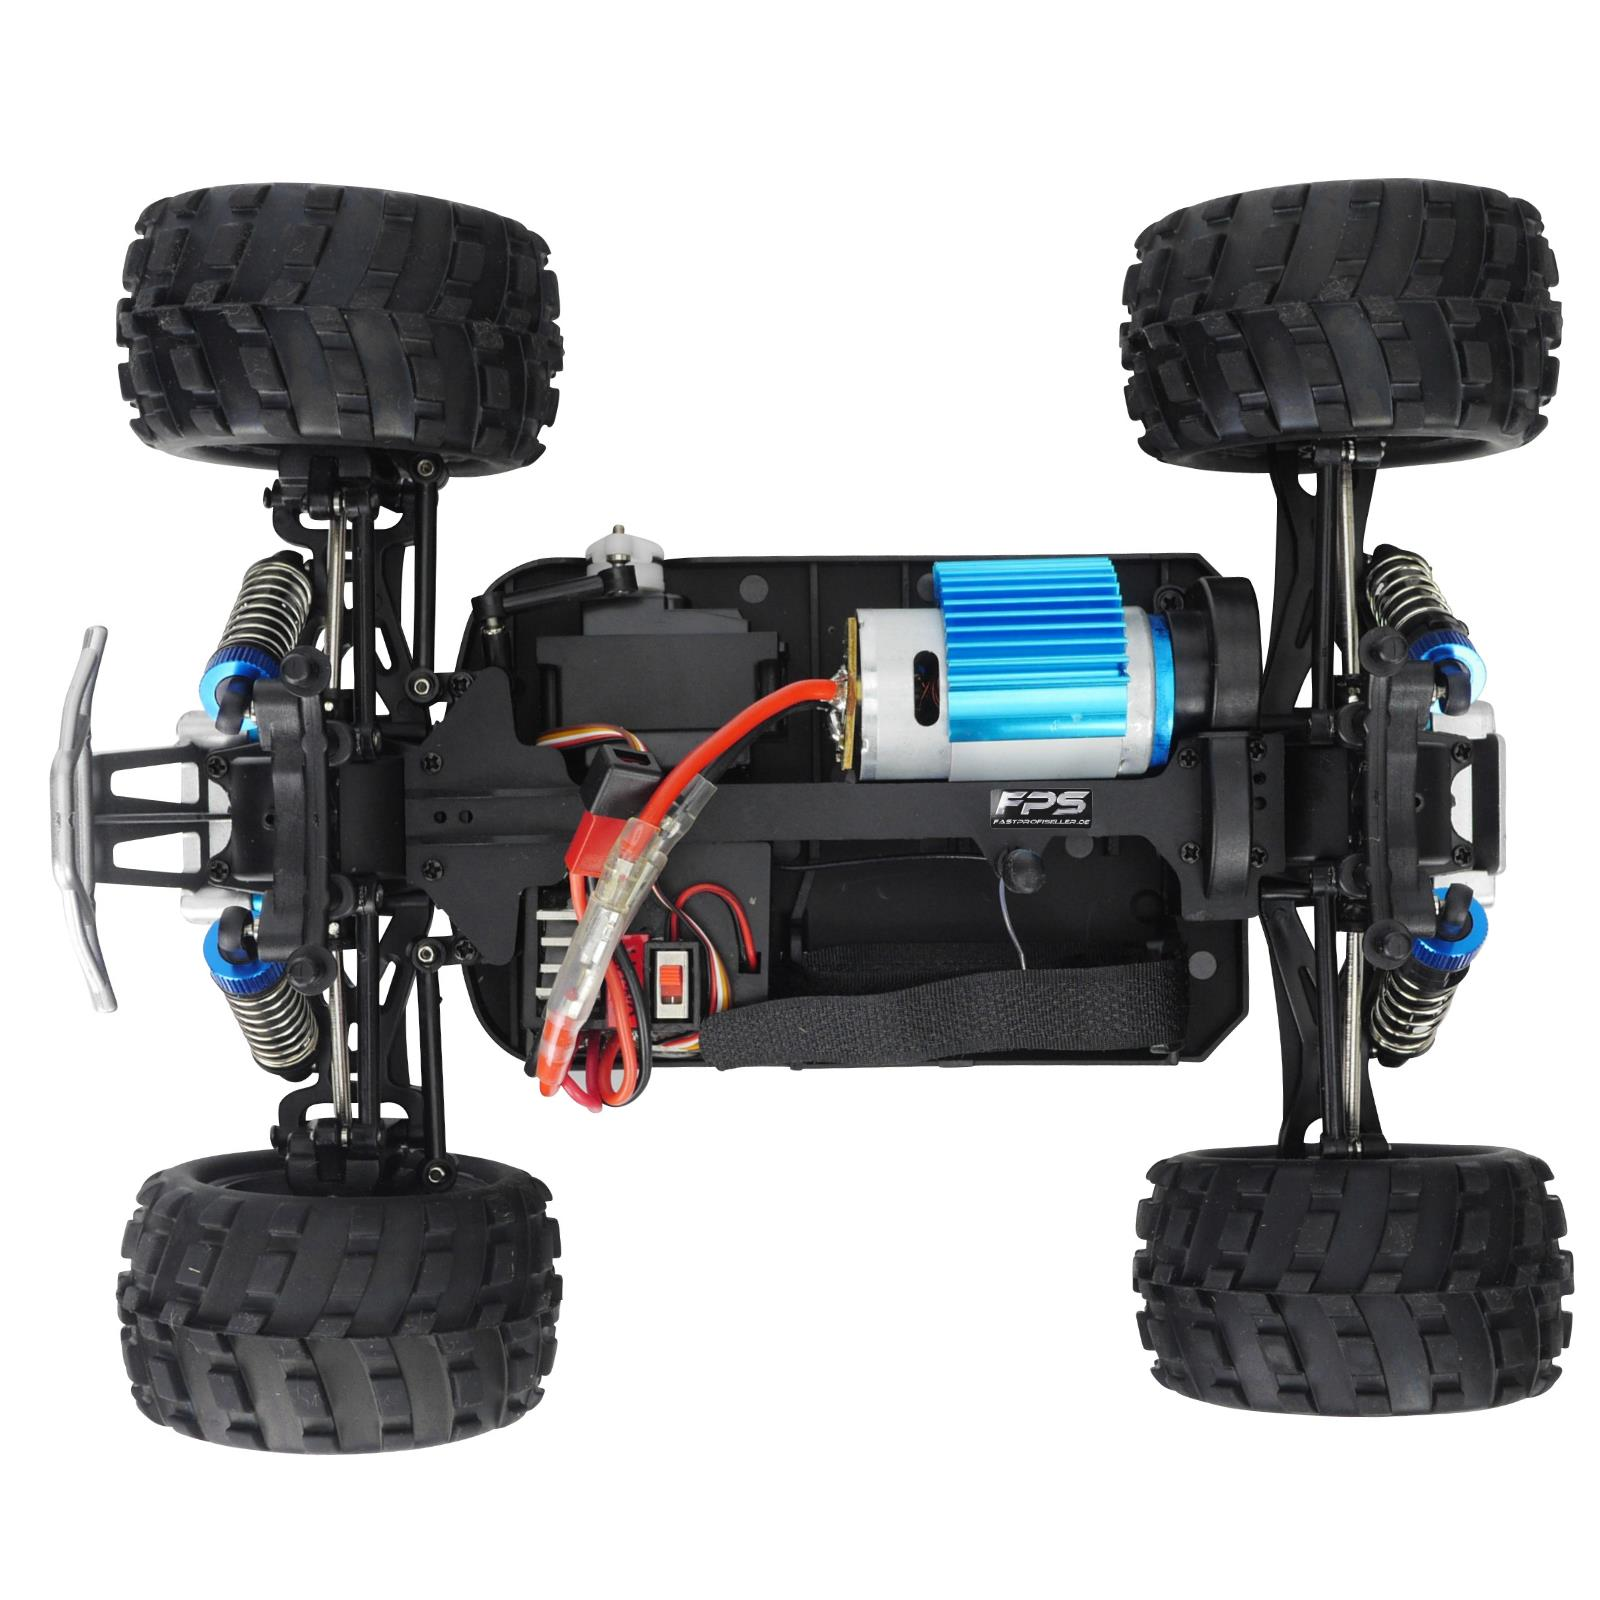 rc modellbau elektro auto monstertruck buggy fahrzeug 1 18. Black Bedroom Furniture Sets. Home Design Ideas